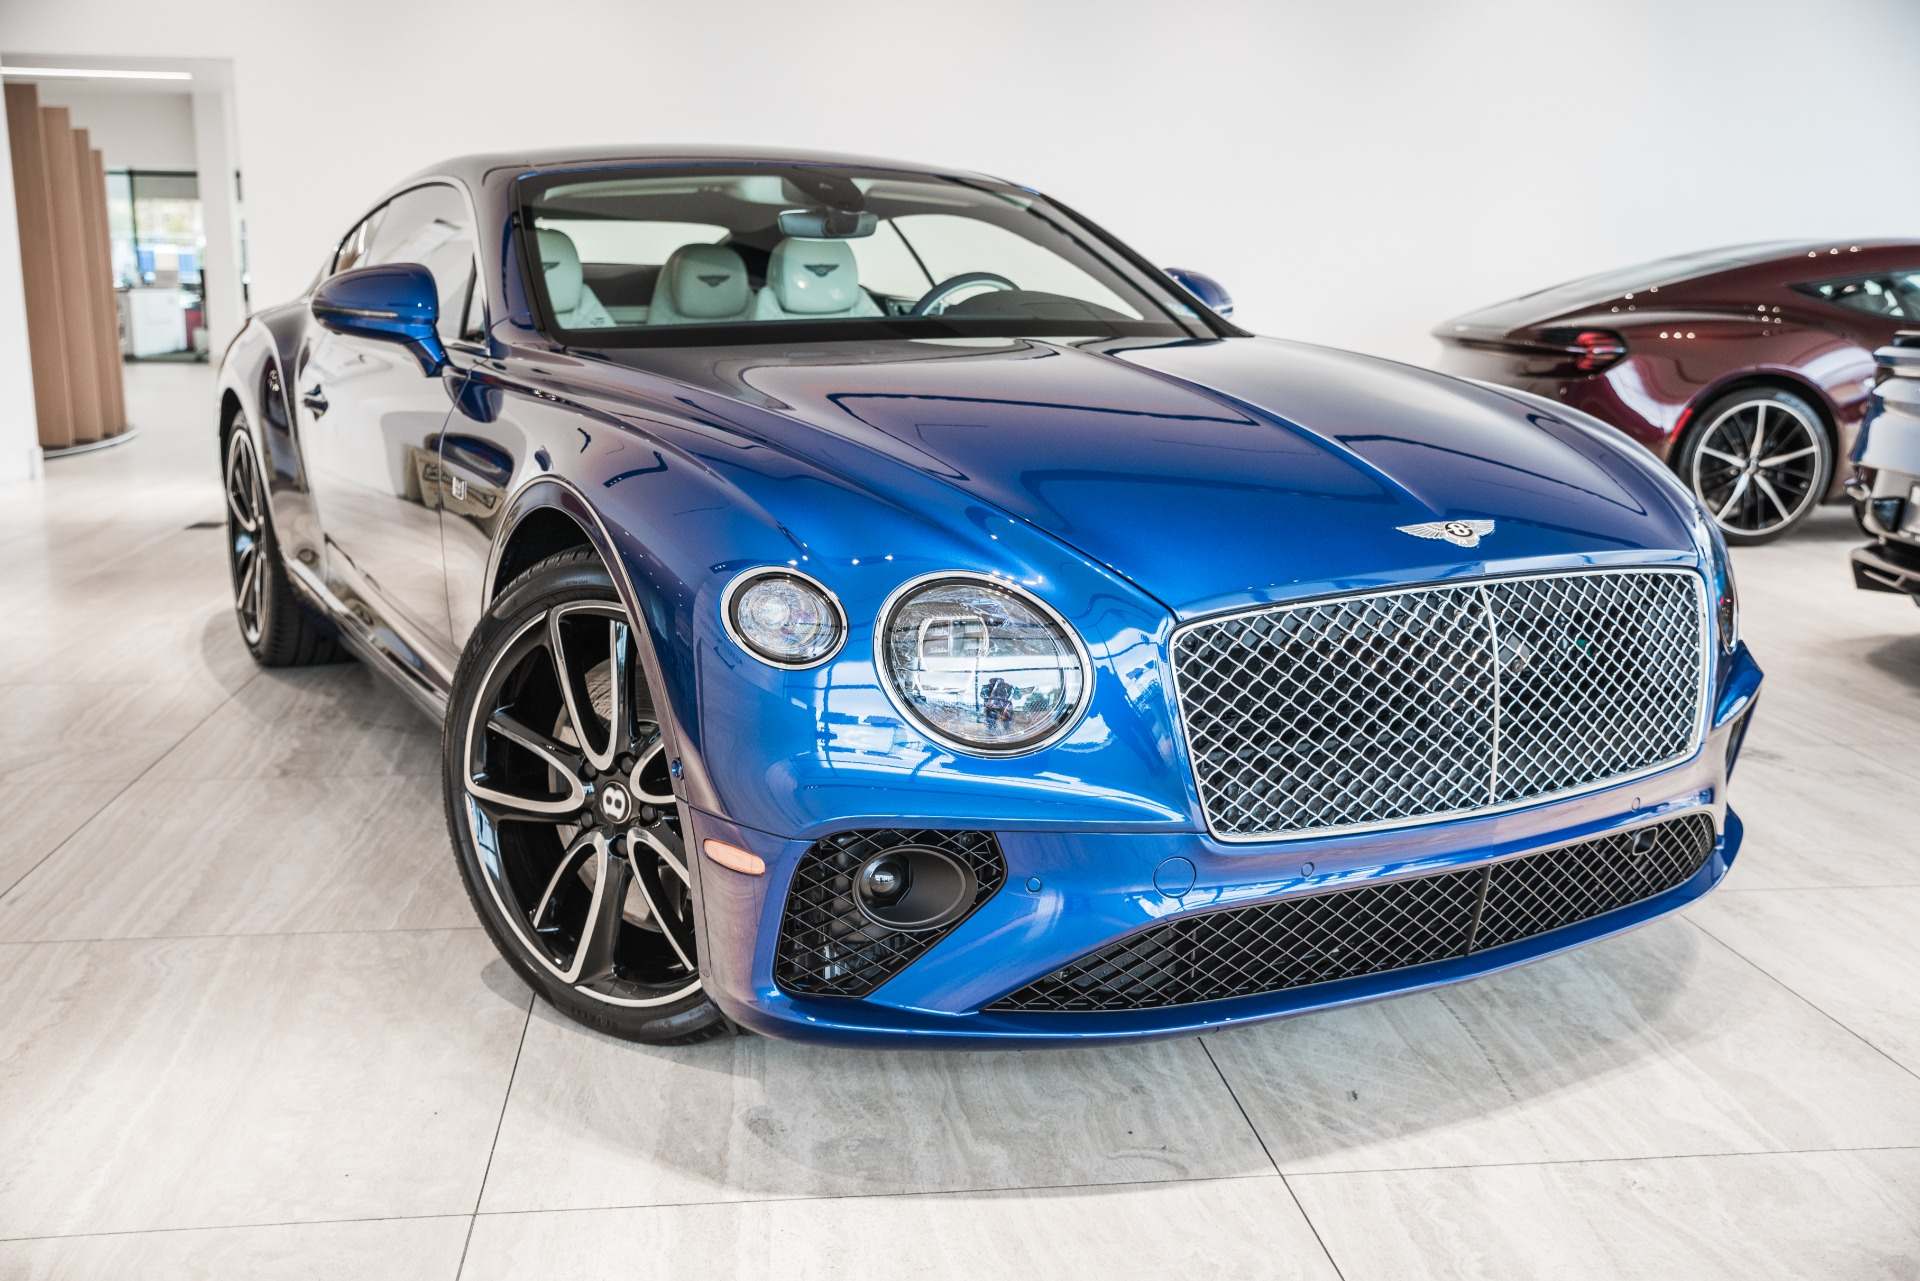 2020 Bentley Continental Gt V8 Stock P074728 For Sale Near Vienna Va Va Bentley Dealer